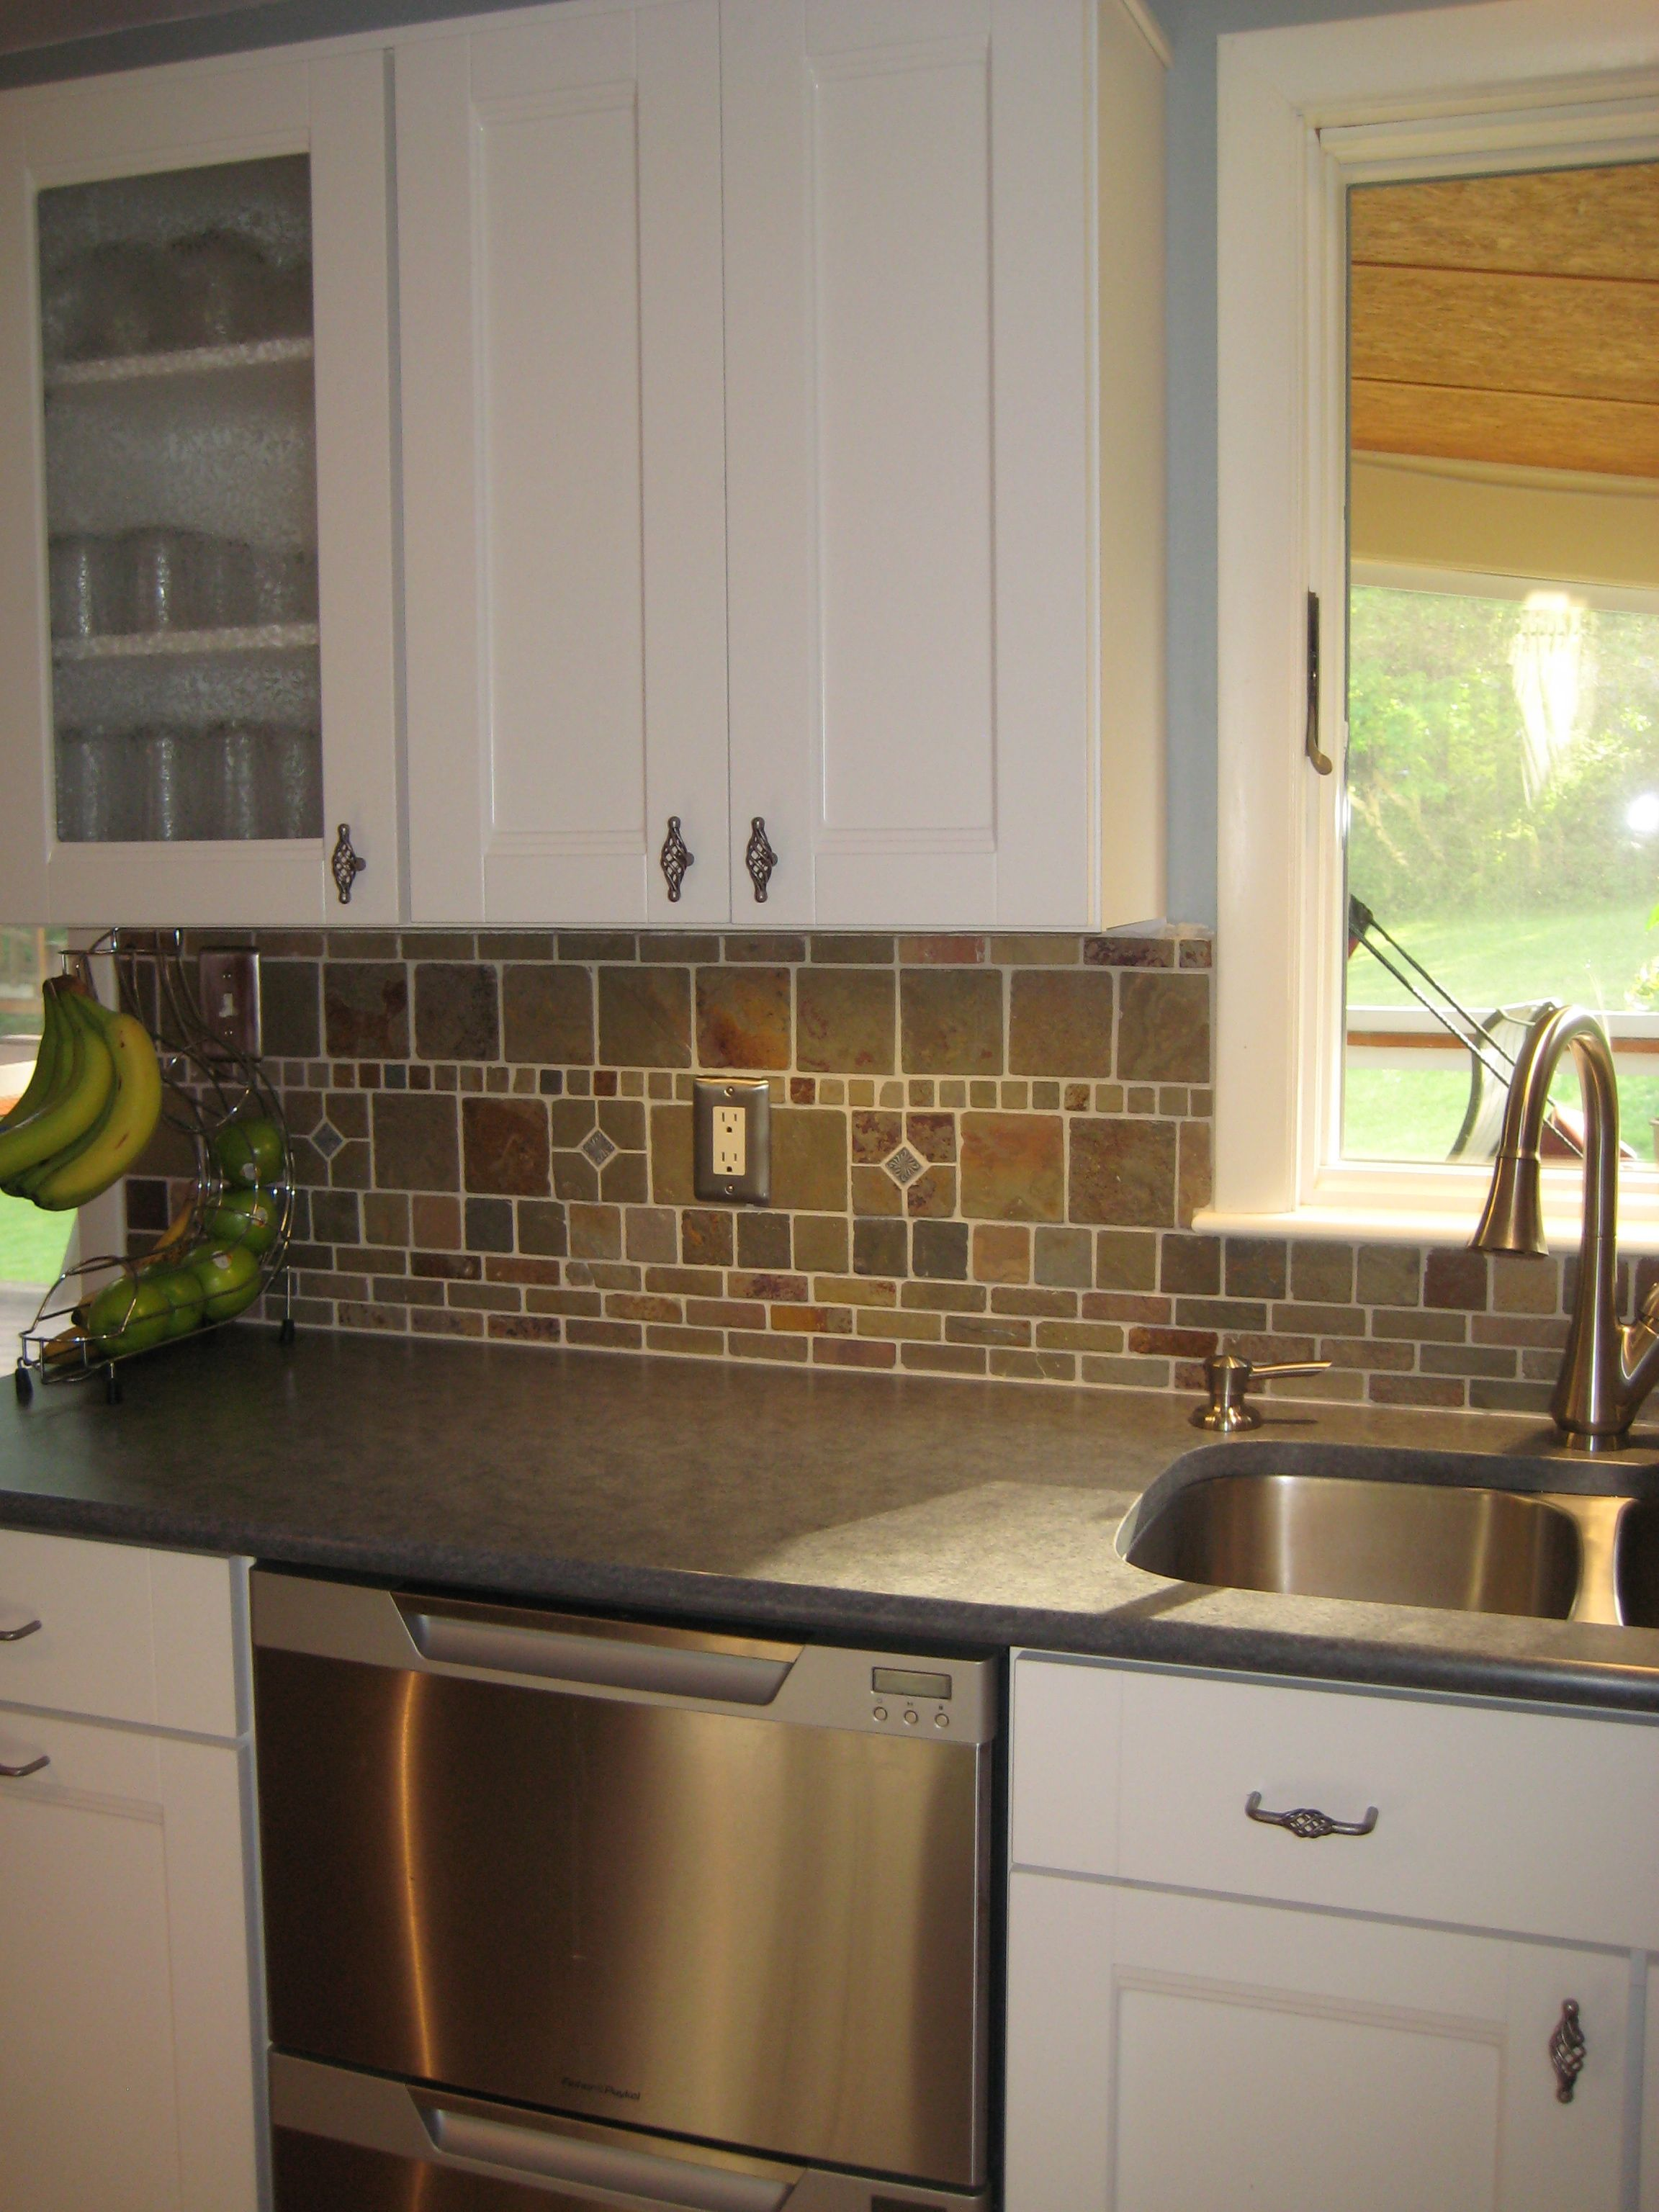 backsplash for kitchen with white cabinet backsplash ideas on backsplash ideas kitchen 10882